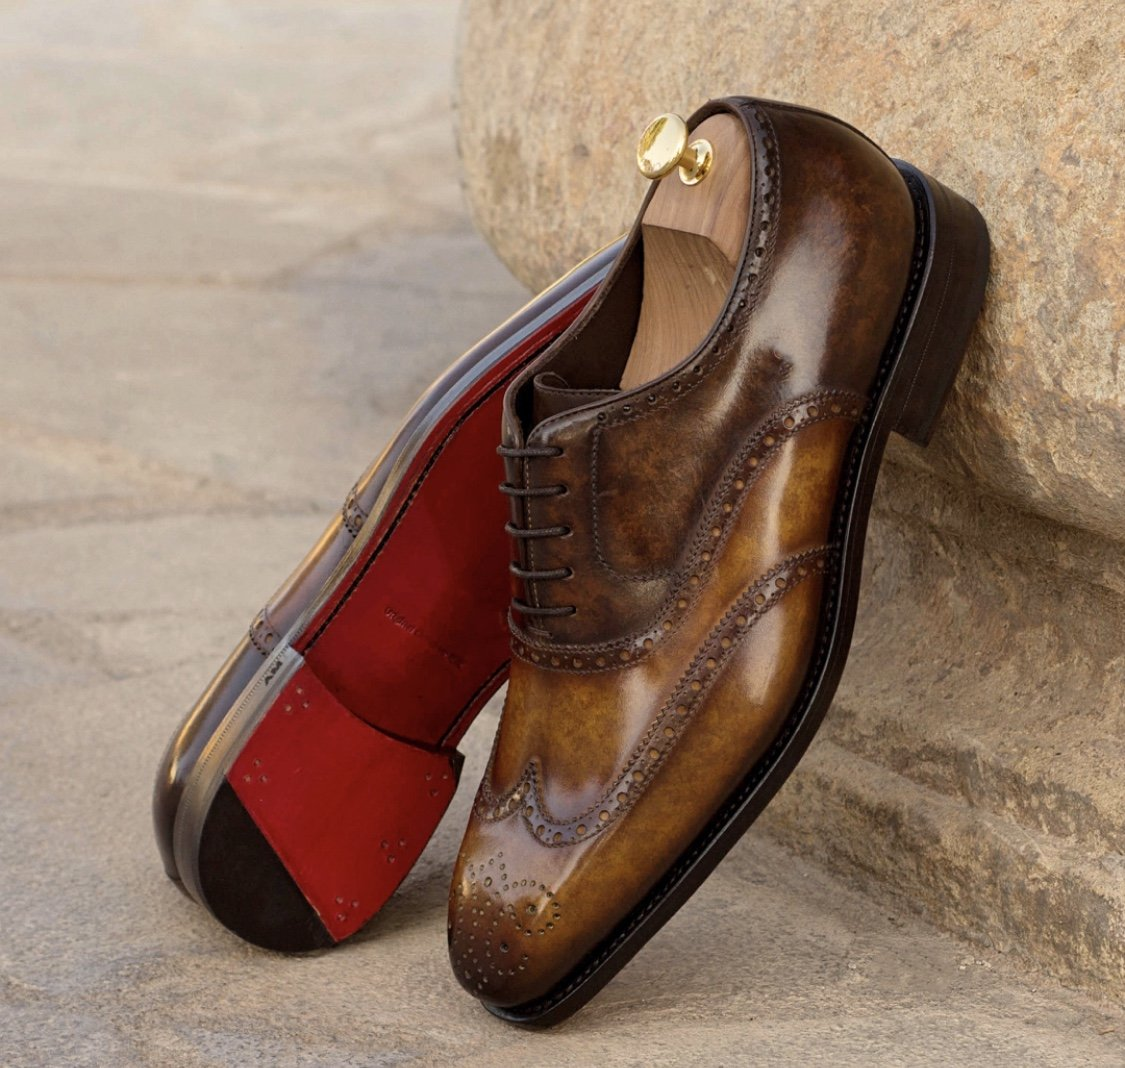 Designing Custom Leather Shoes for Men